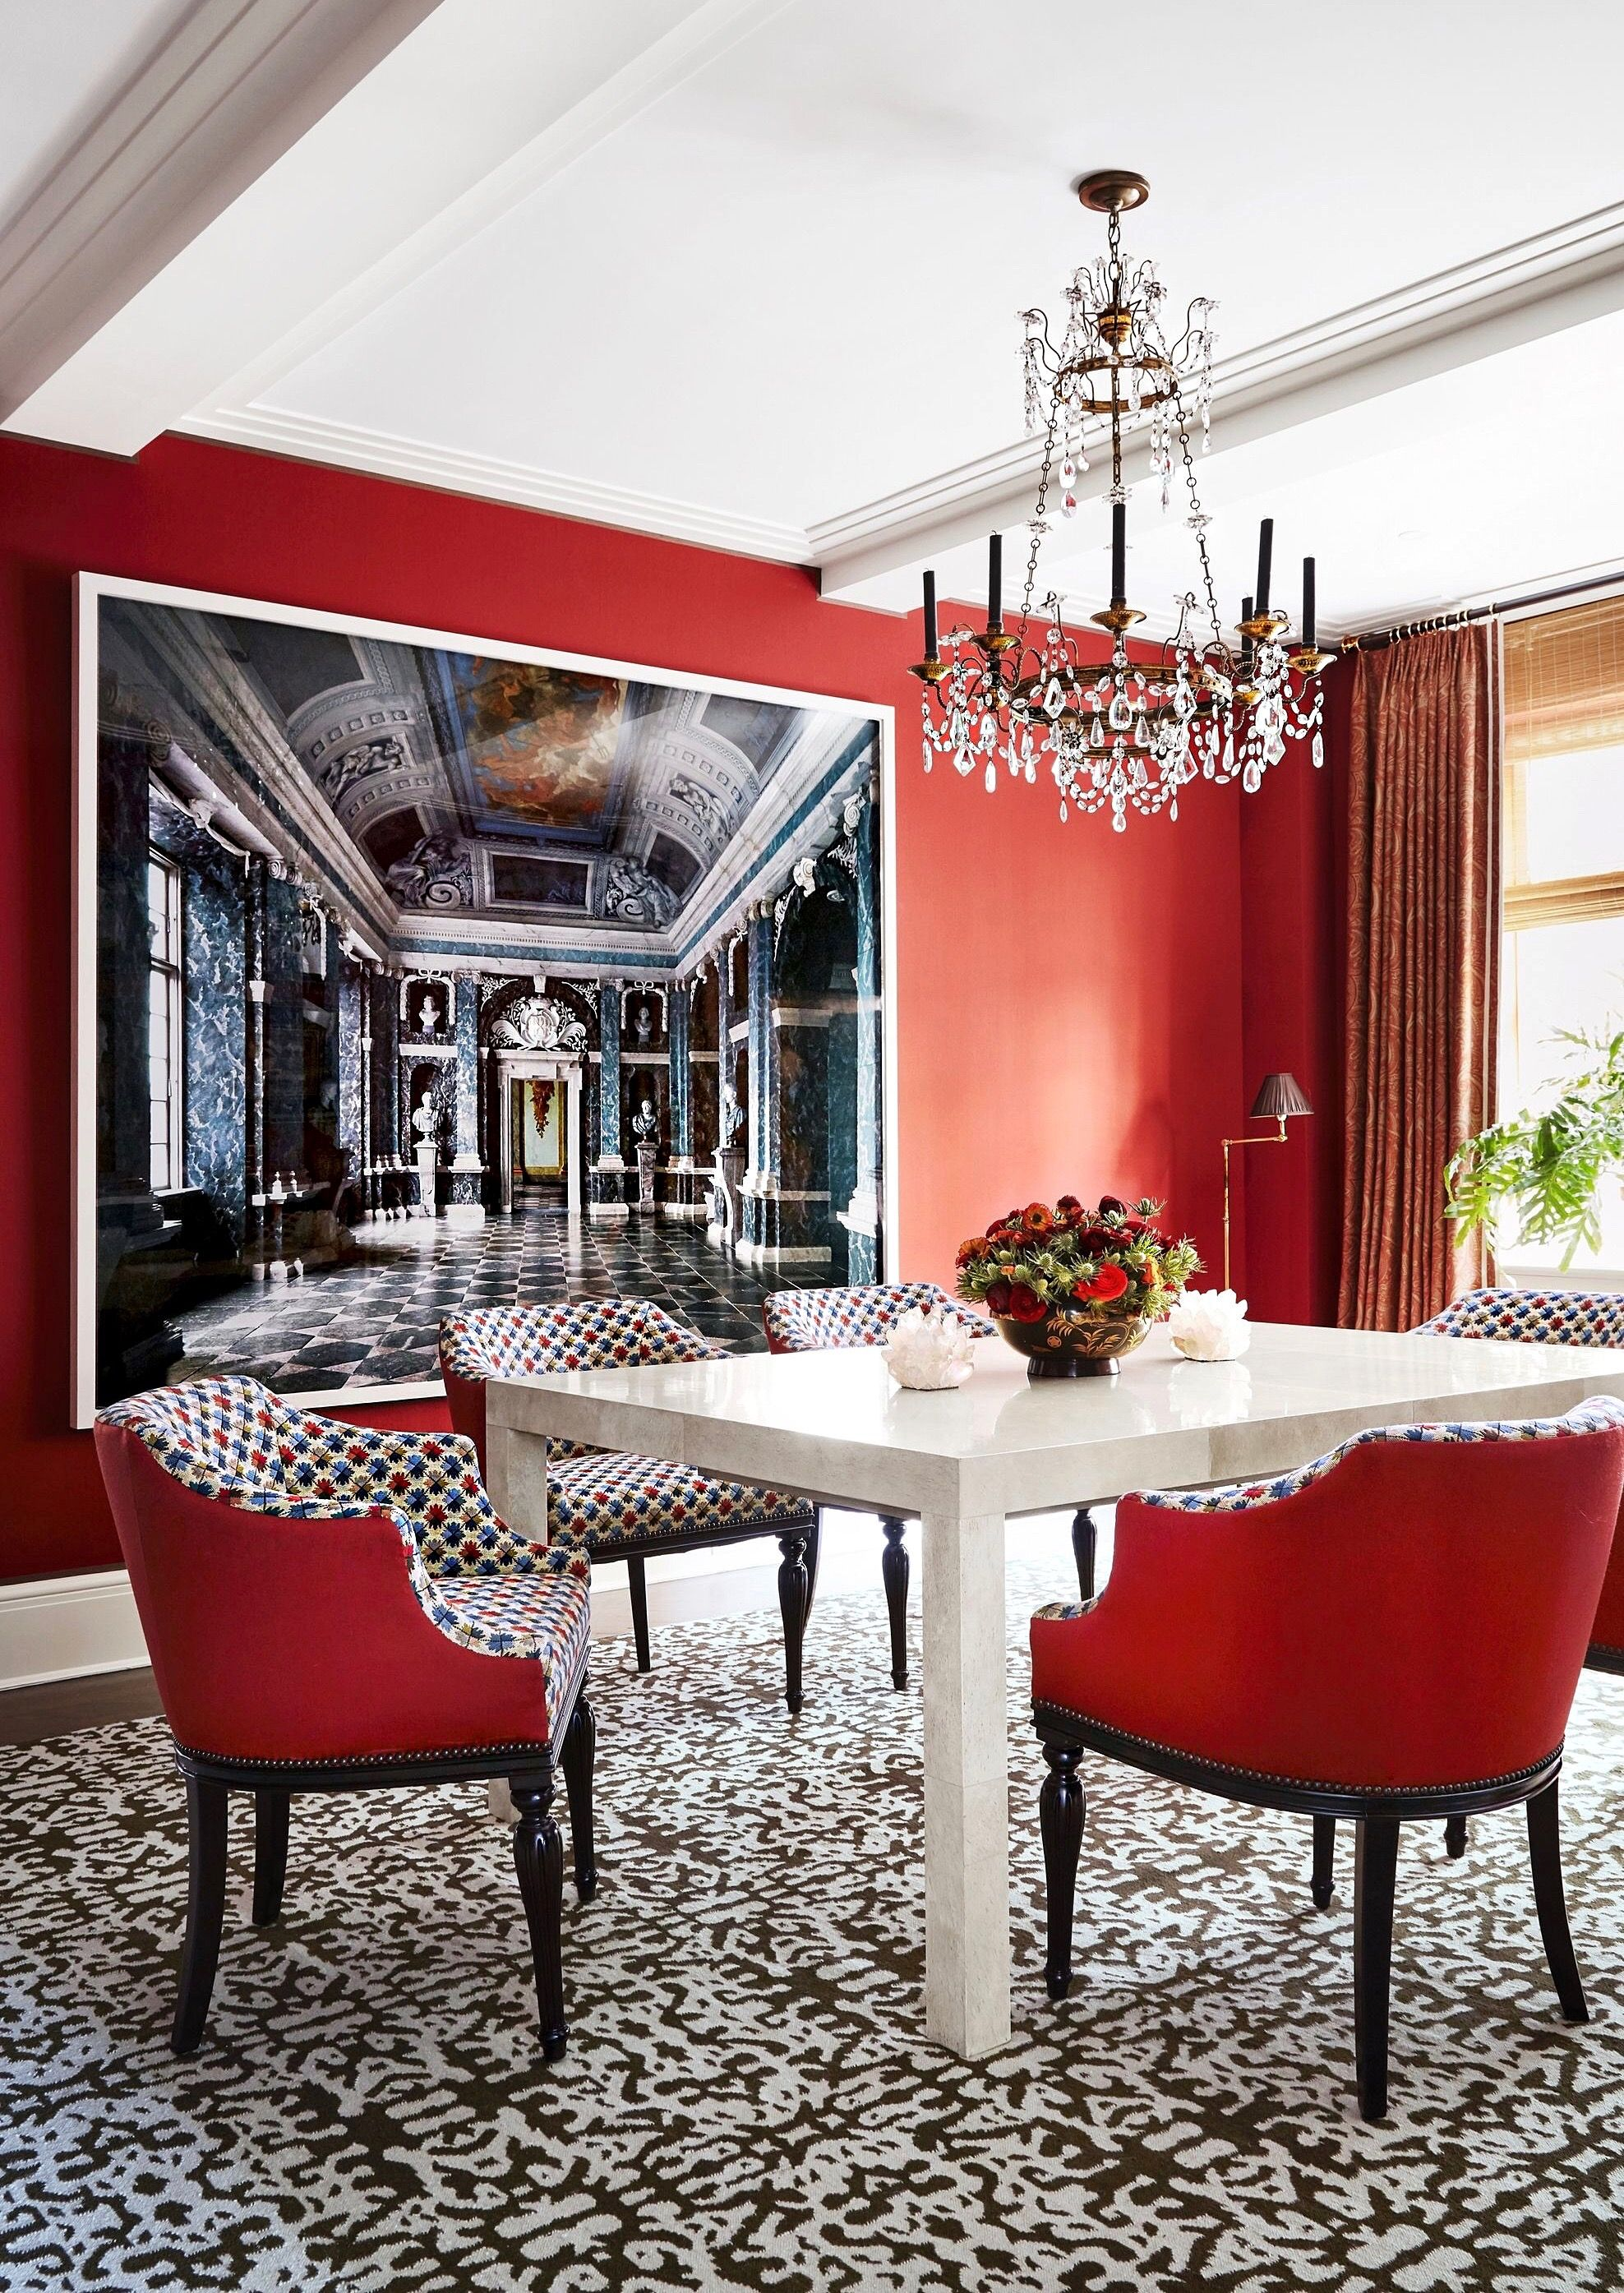 Red is the great clarifier - bright, cleansing, reveling. It makes all colors beautiful. | by #DianaVreeland | via #housebeautiful | design #markhamroberts | photo #thomasloof | #decoraid #interiordesign #style #fashion #art #love #redroom #schumacher #covelanding #dreamhome